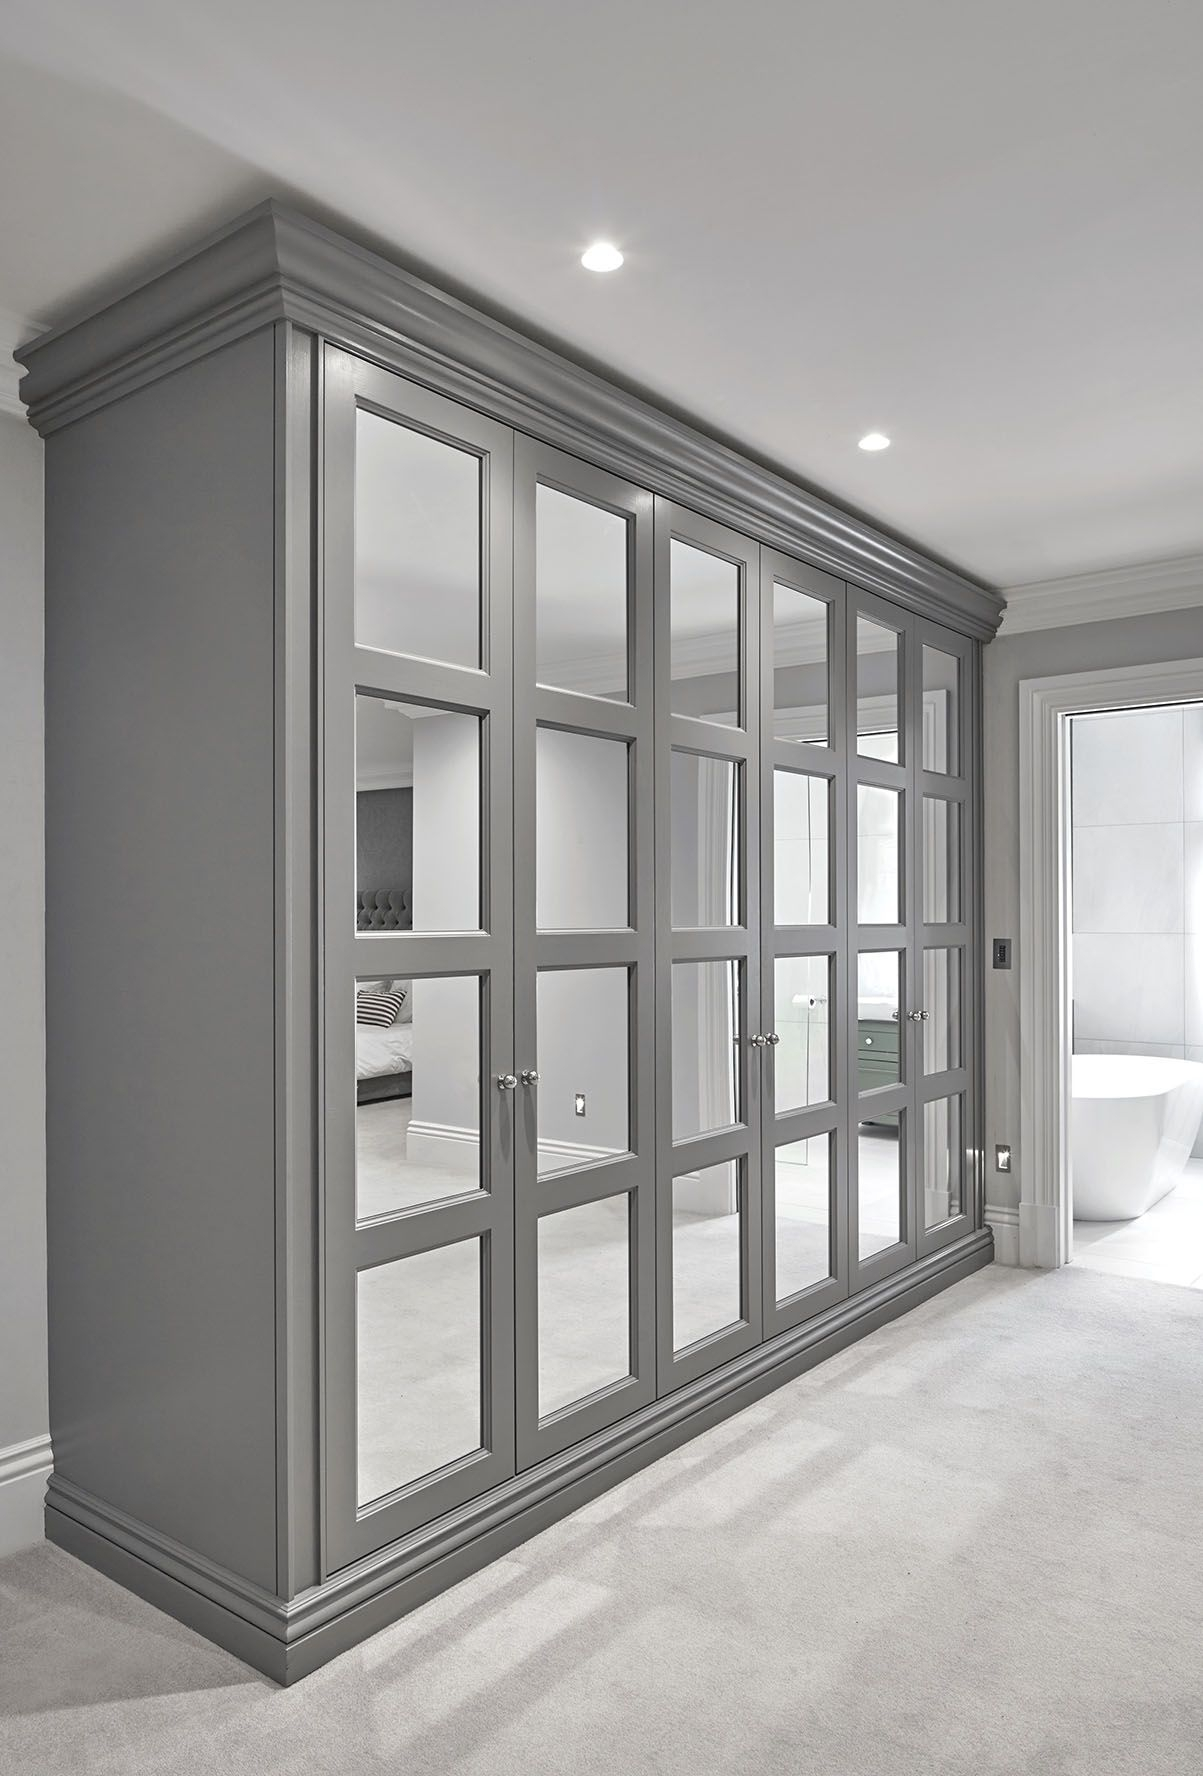 Fulham London In 2019 with Bedroom Cupboard Sliding Doors